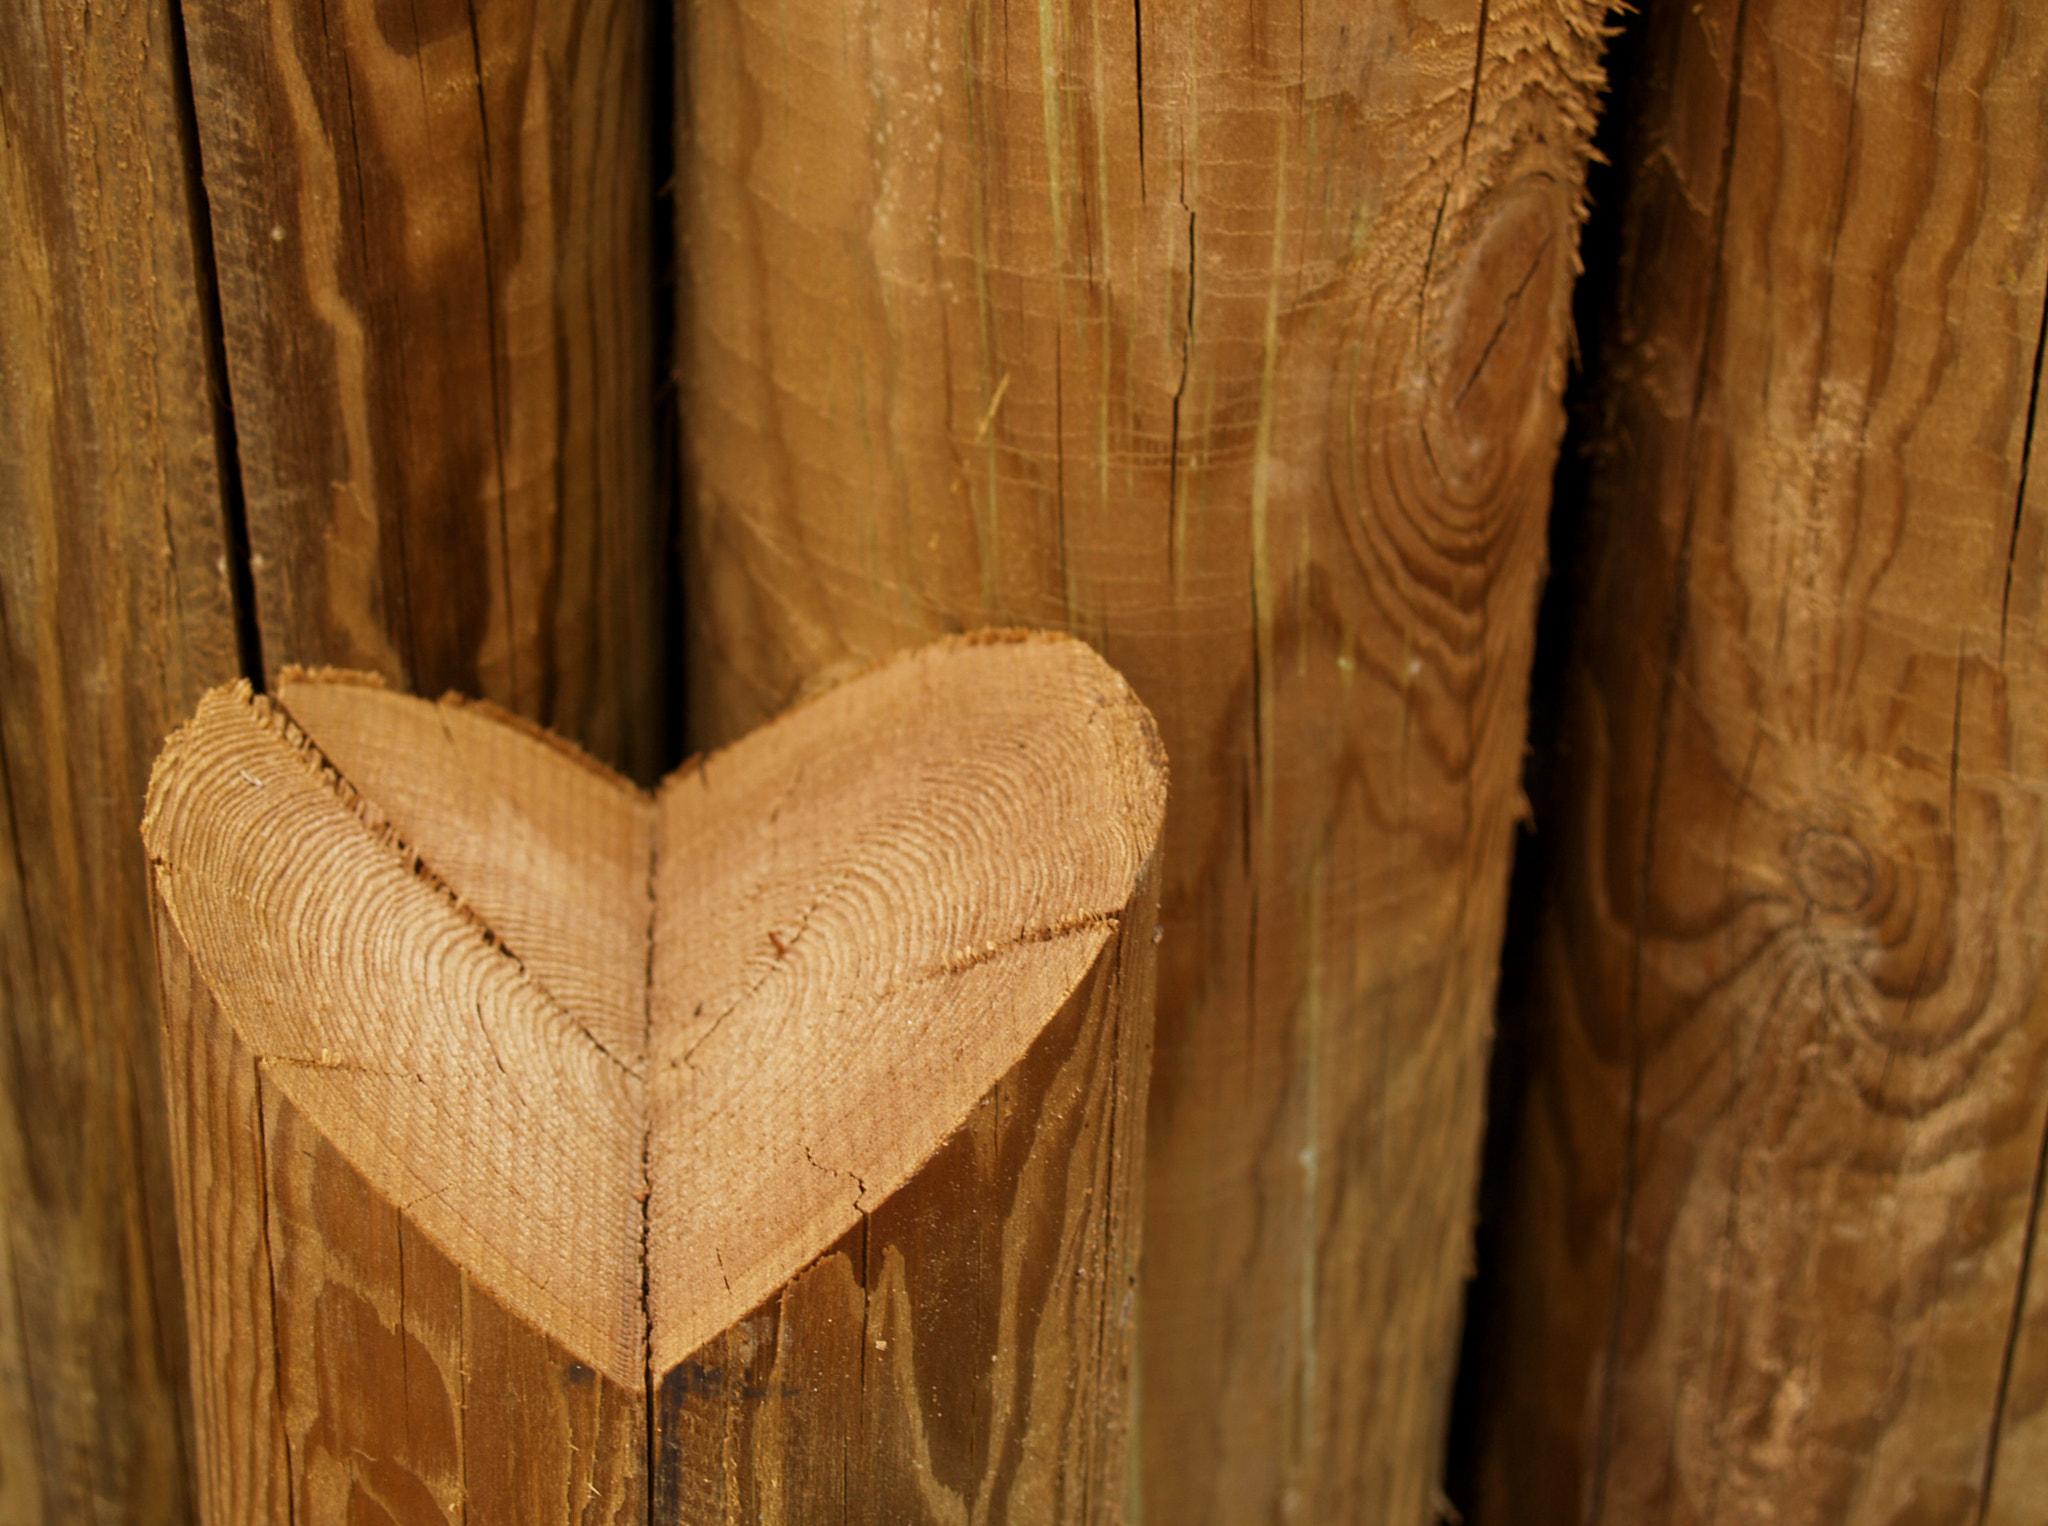 Photograph The Heart by Manolo Toledo on 500px